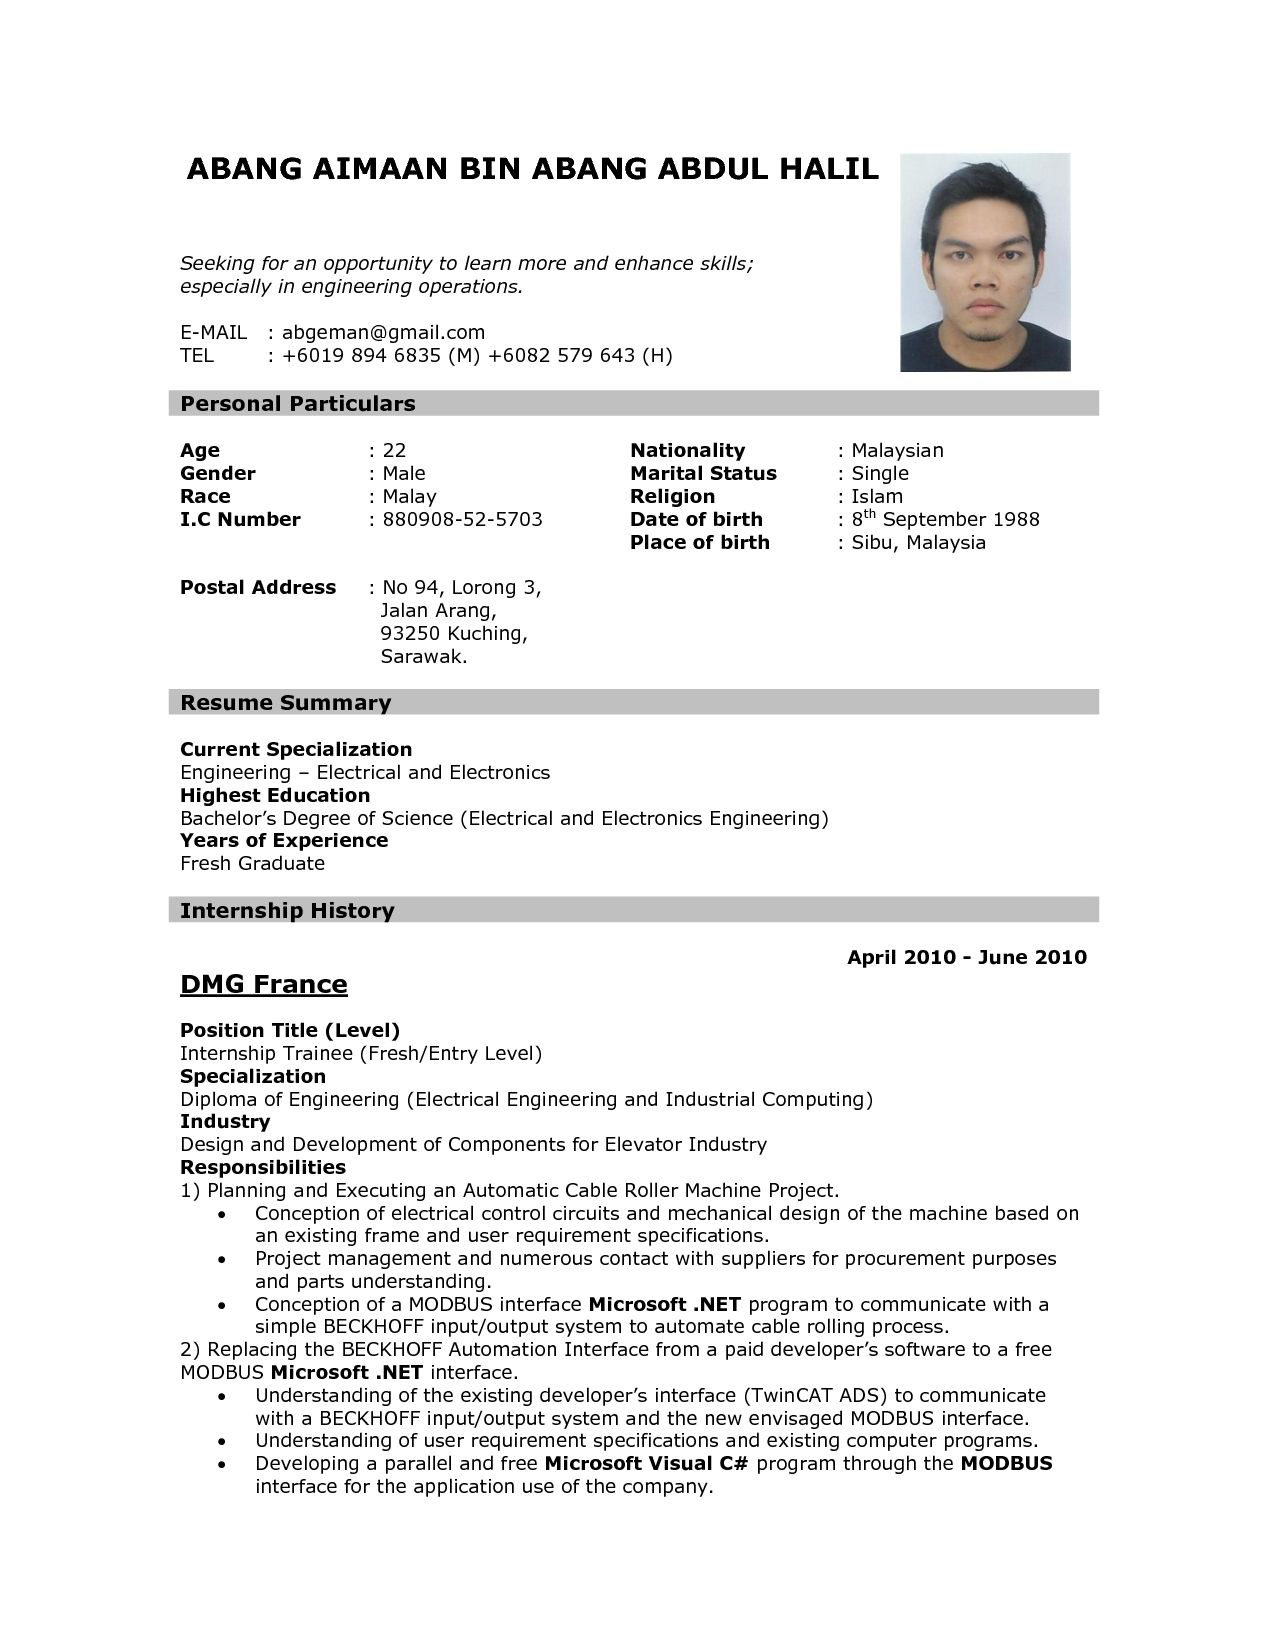 sample job resume format mr sample resume best simple format of format of resume for job application to data sample resume the sample resume for applying